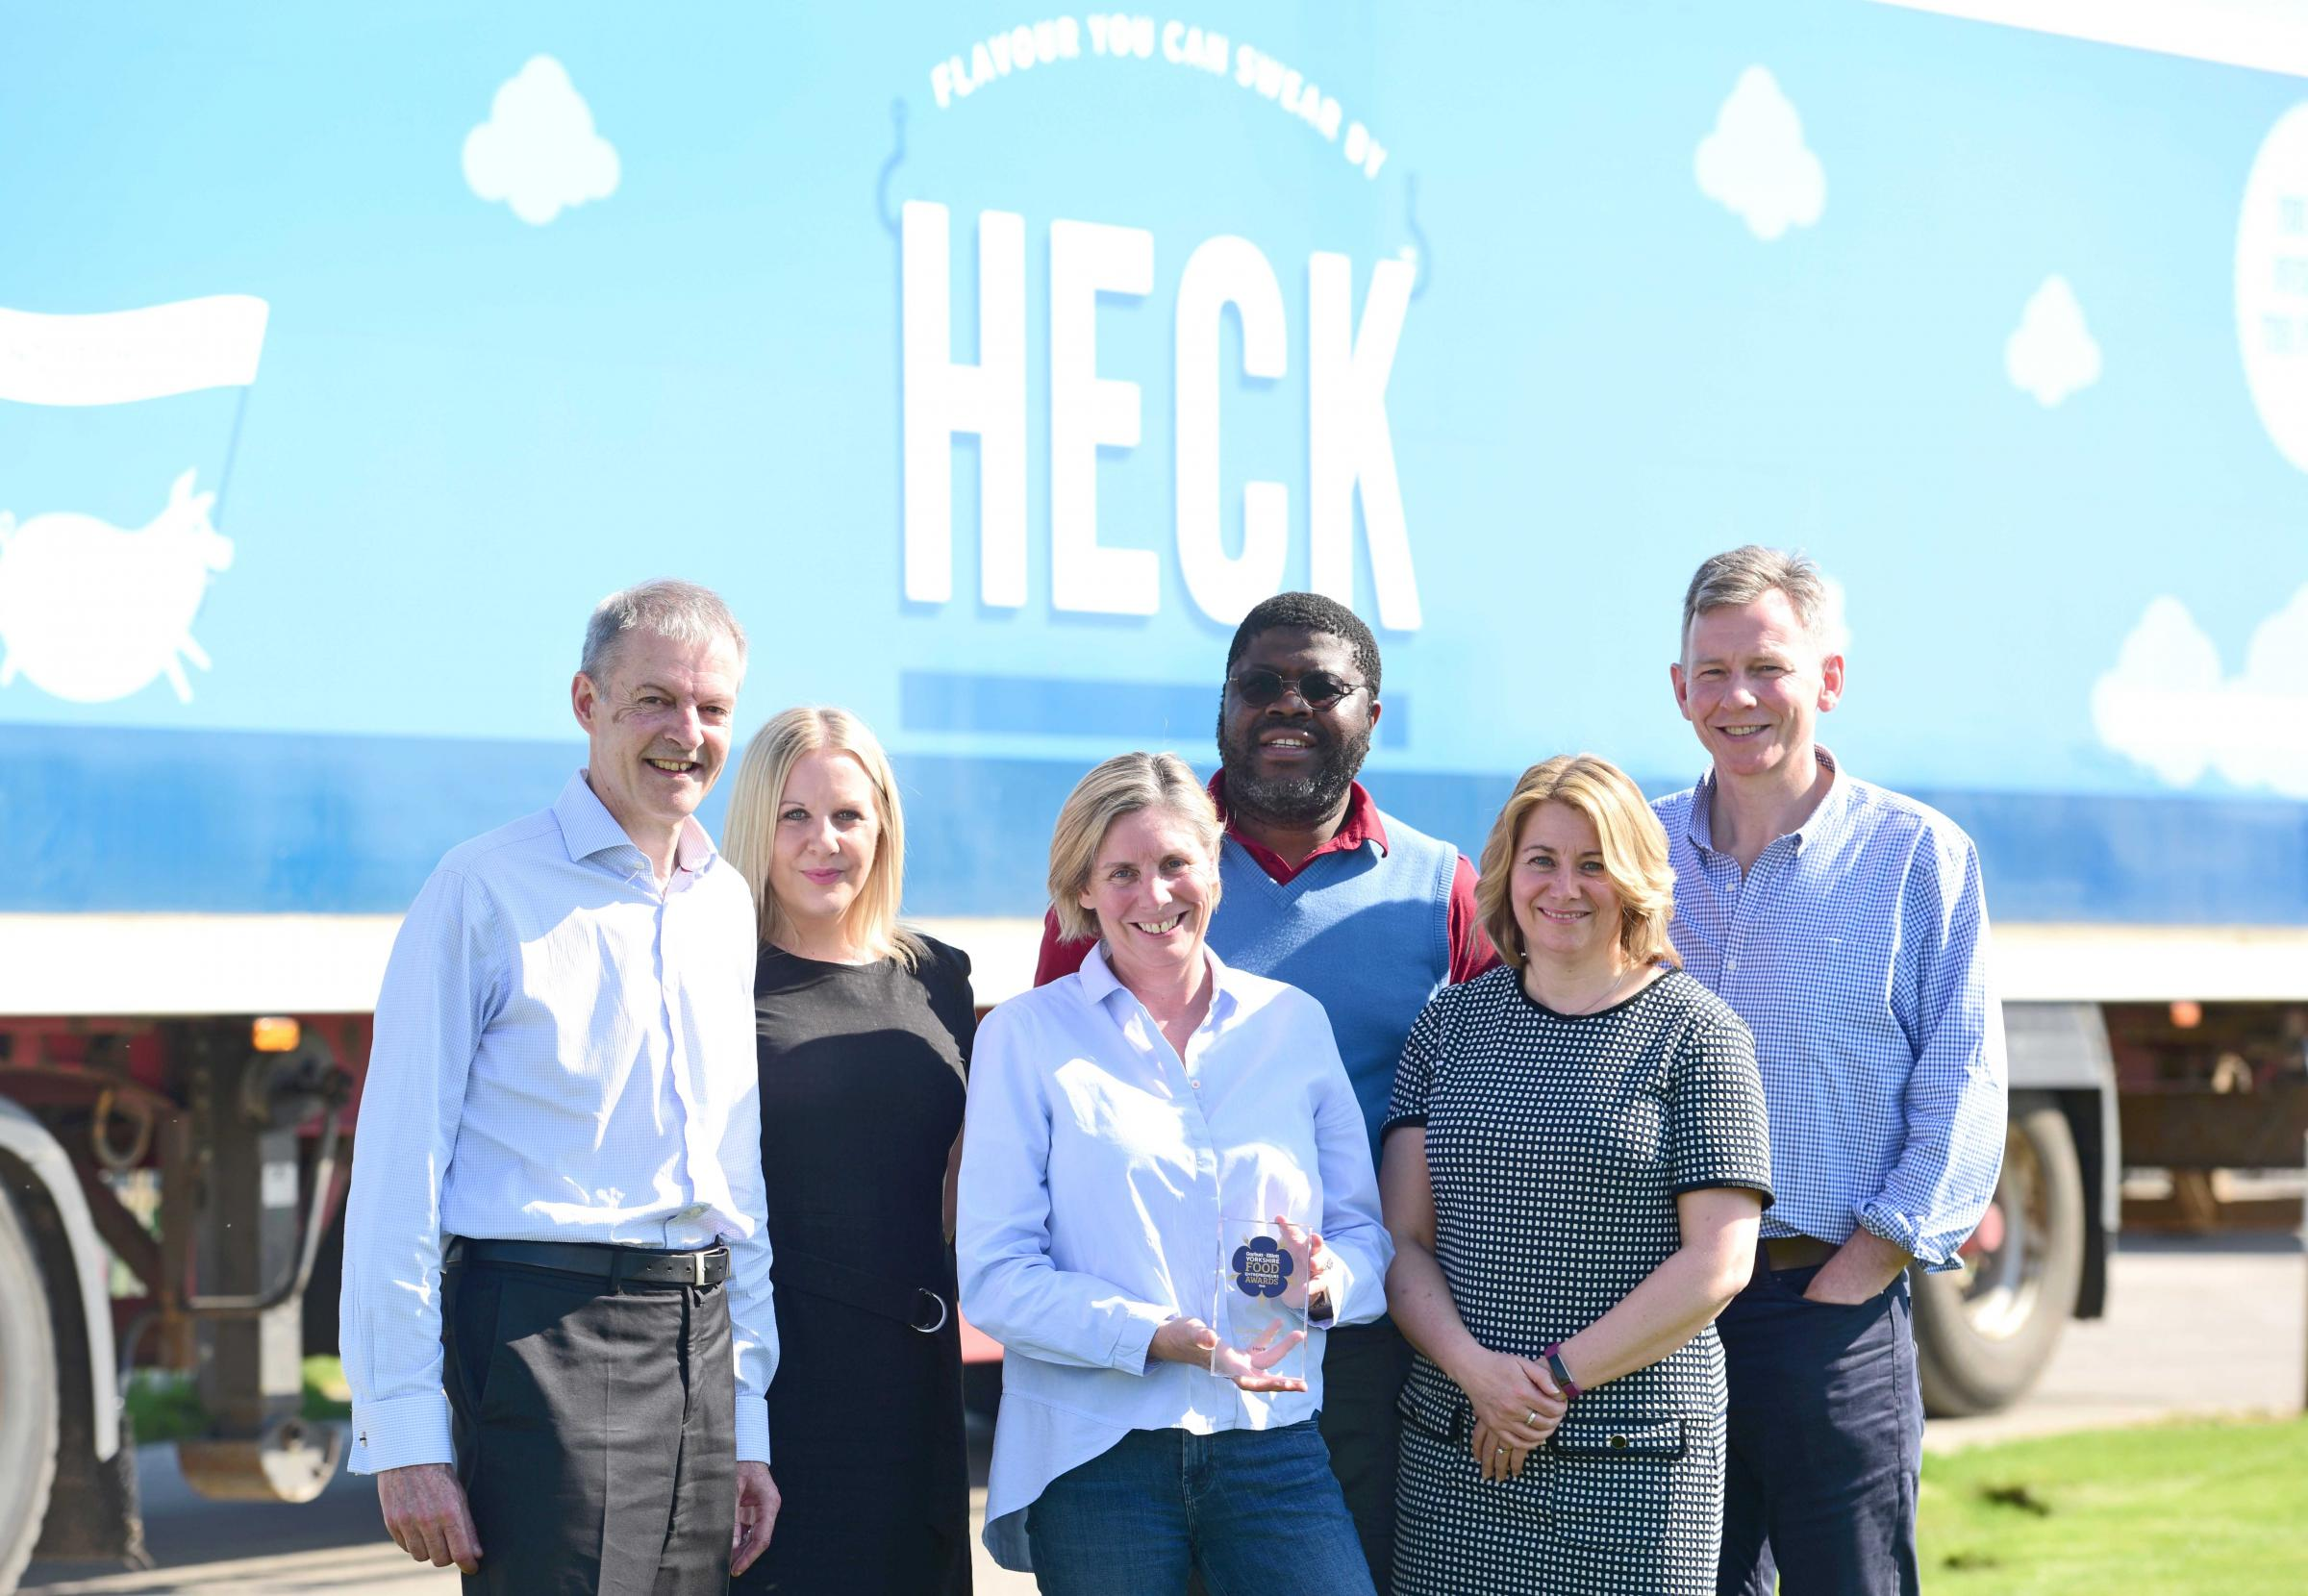 From left, Garbutt + Elliott's Richard Feltham and Karen Simeson; Heck Food founder, Debbie Keeble and financial controller, Sam Mawa; Garbutt + Elliott's Sarah Ashton and Panoramic Growth Equity's Stephen Campbell